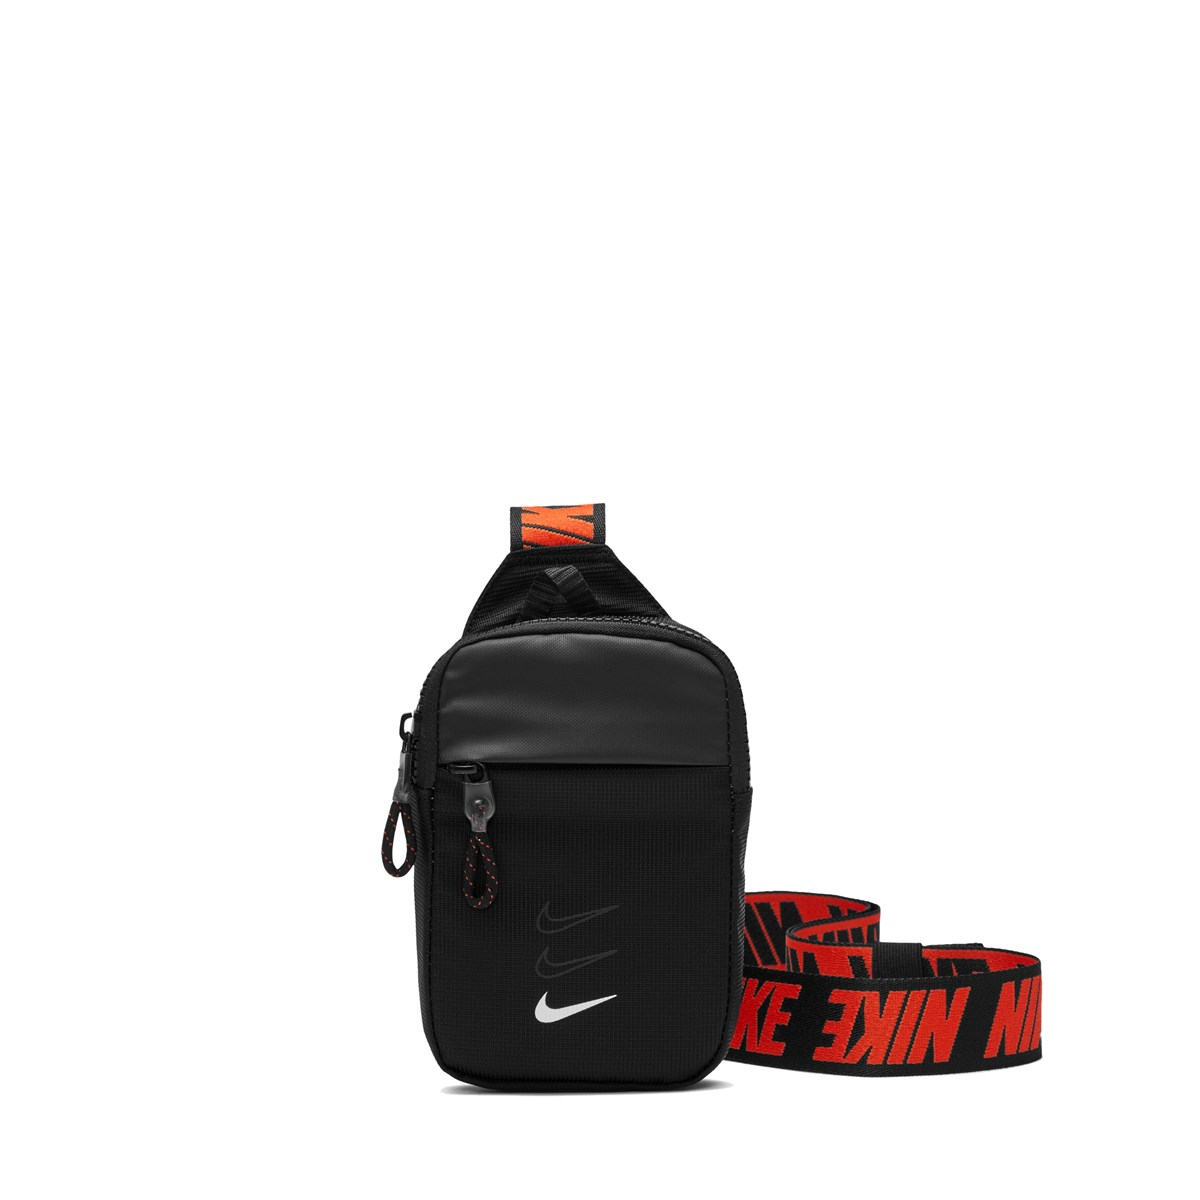 Nike Advance Crossbody Bag in Black